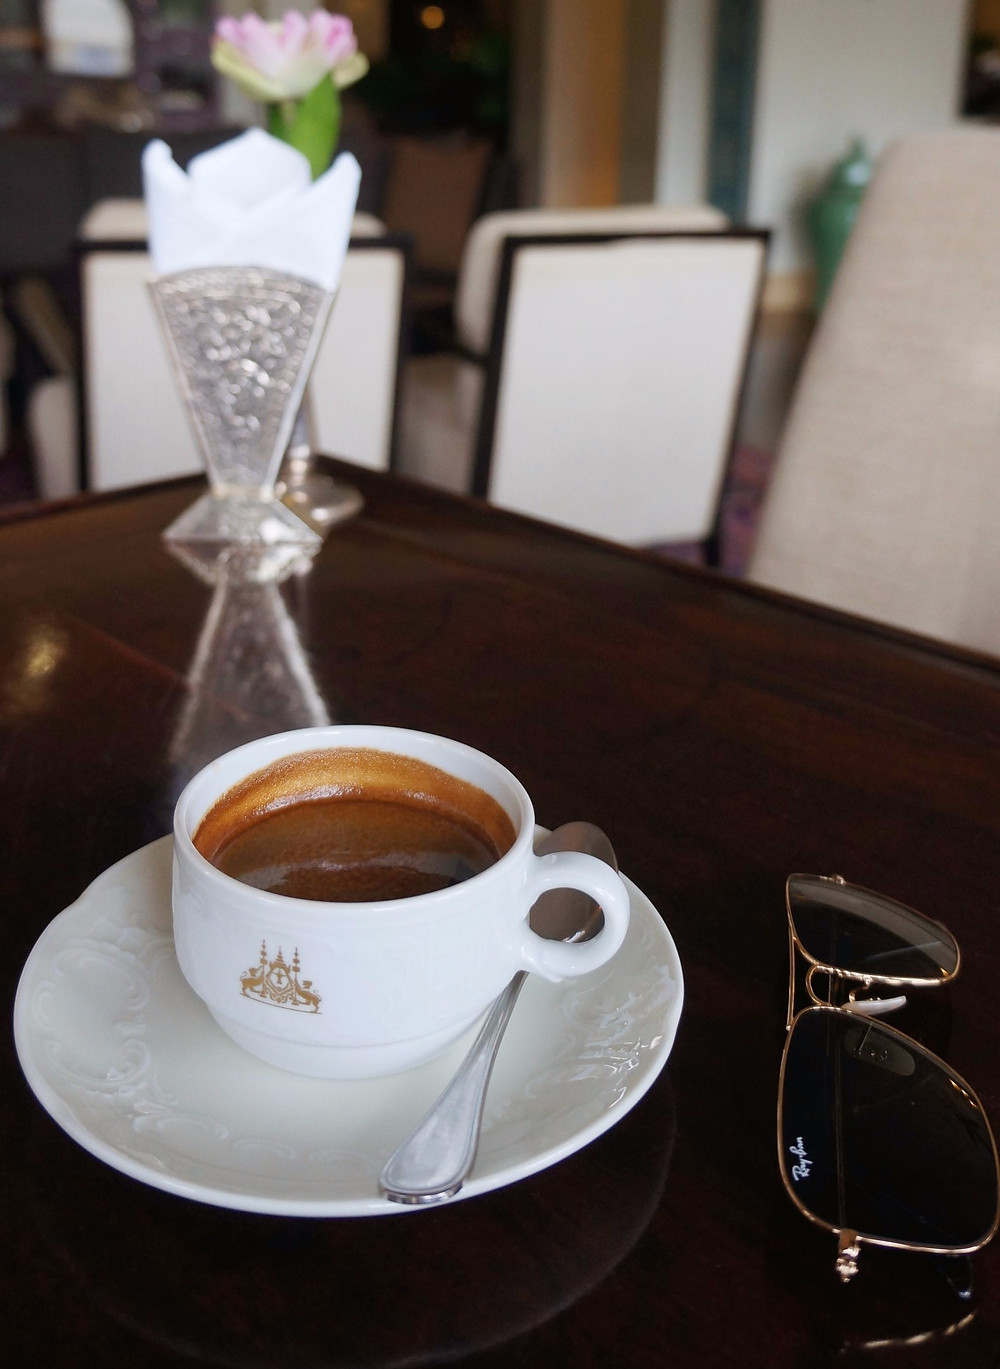 Enjoying a cup of coffee after afternoon tea at Raffles Grand Hotel D'Angkor